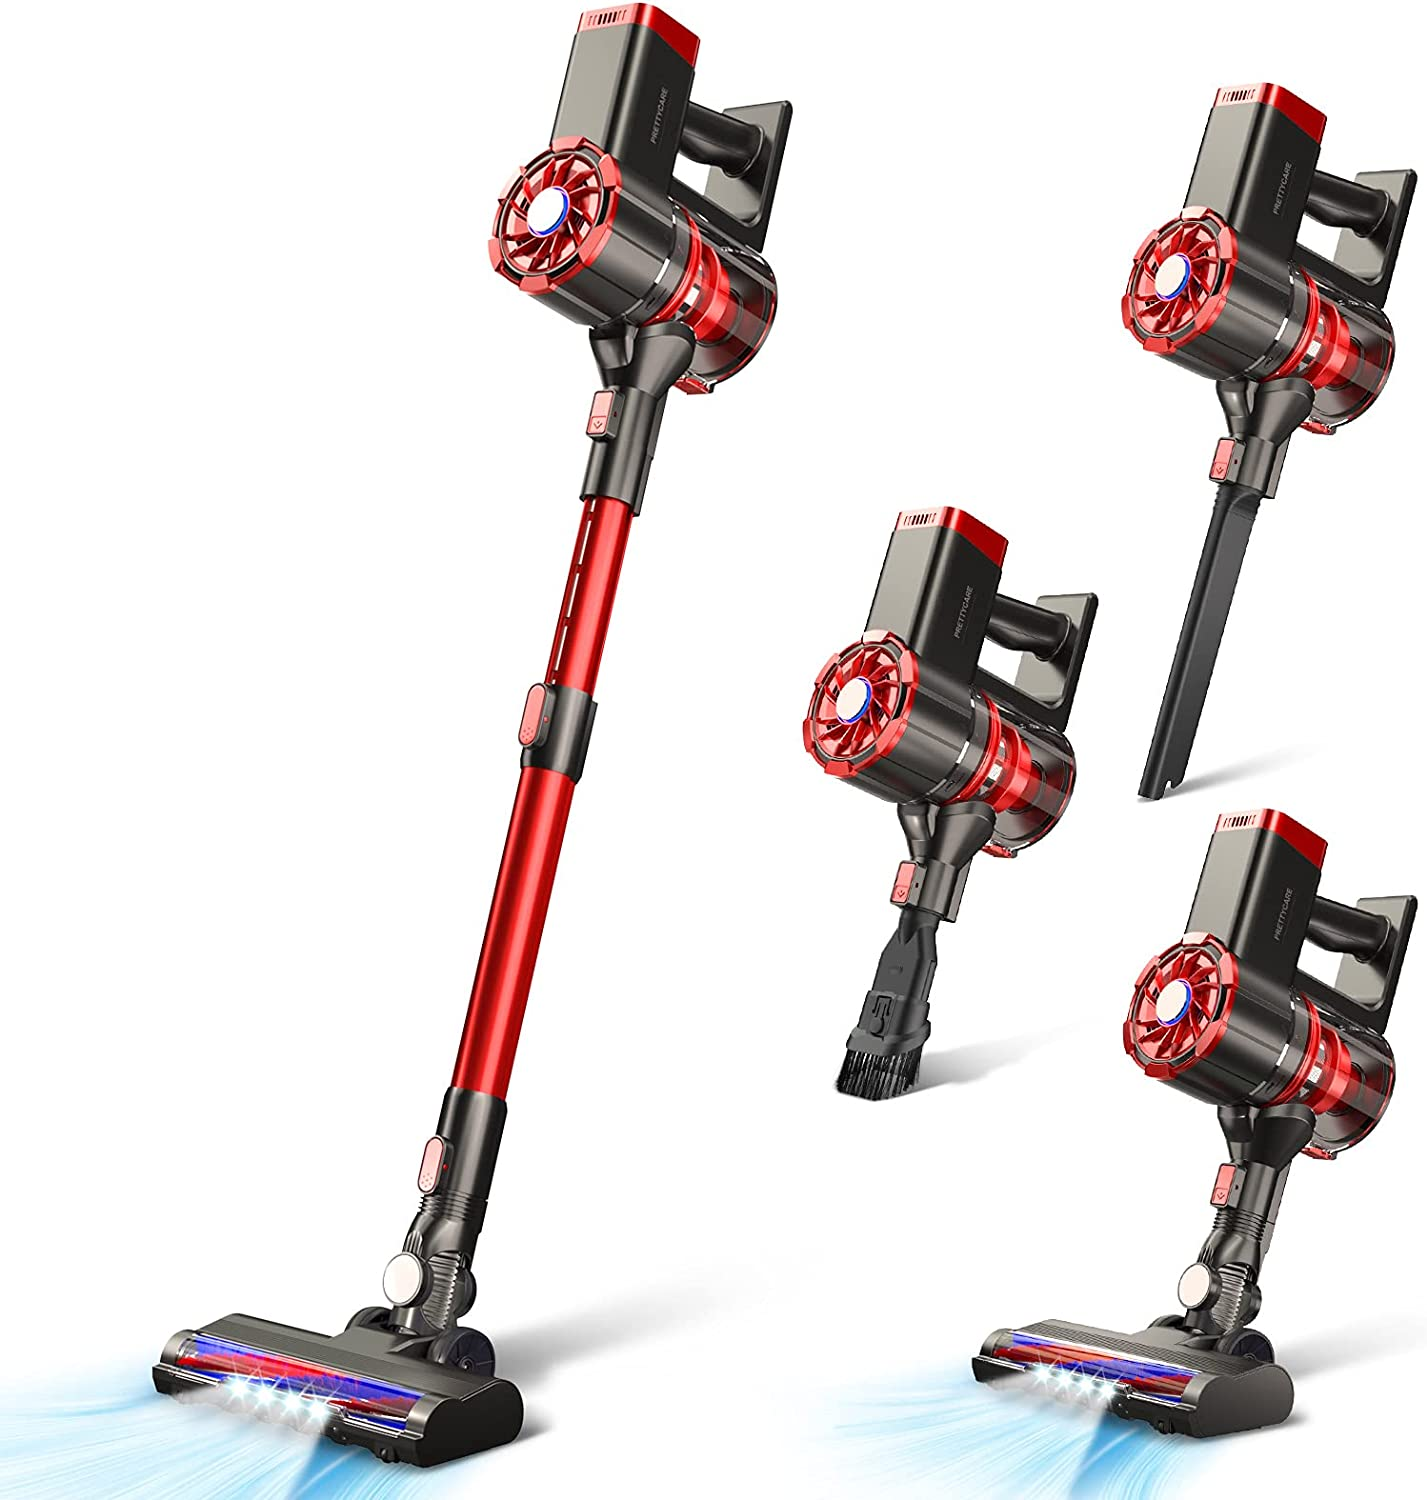 PrettyCare 4 in 1 20Kpa W100 Cordless Vacuum Cleaner $119.99 Coupon